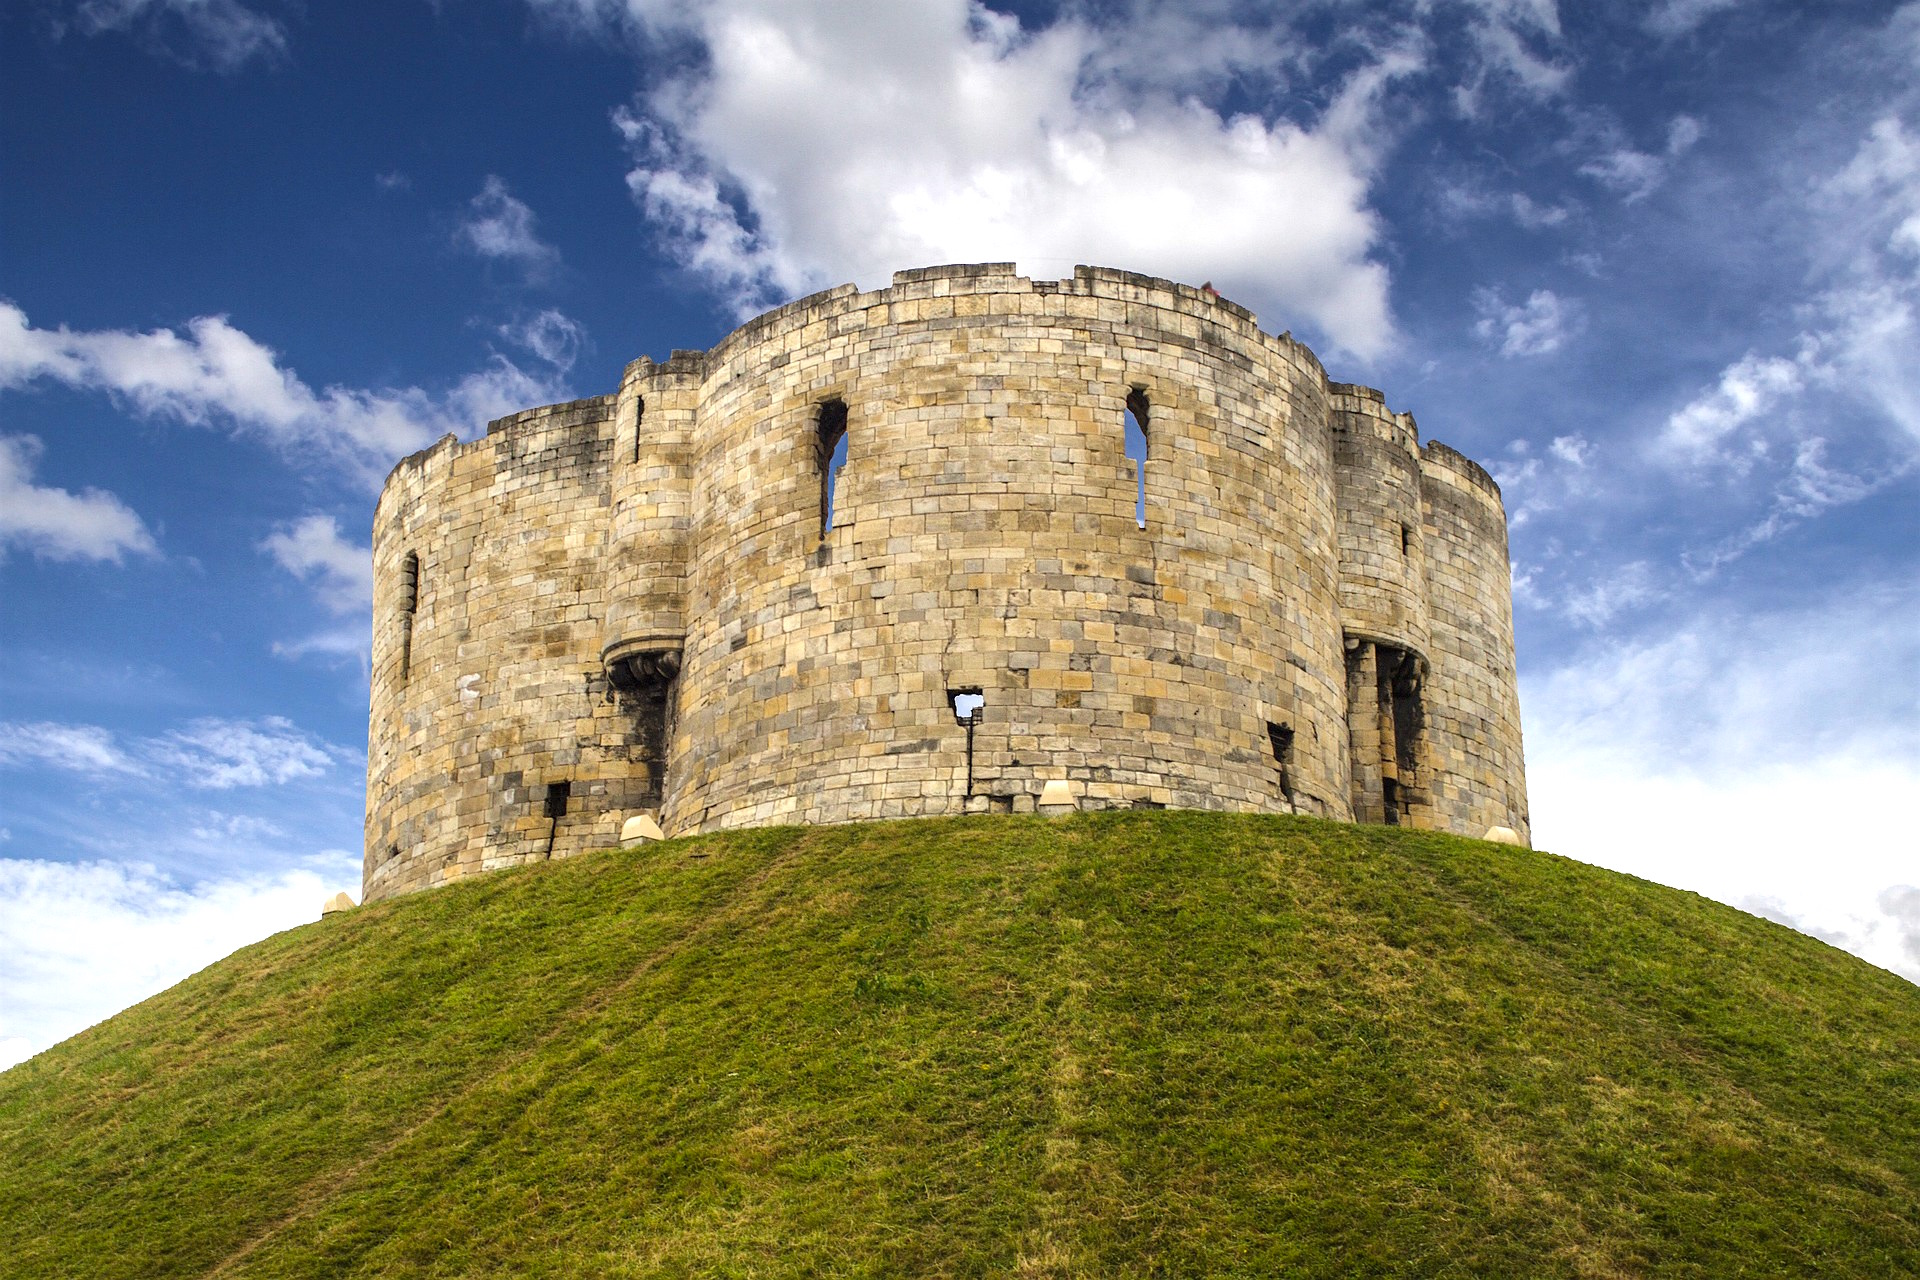 cliffords tower at caste gateway york